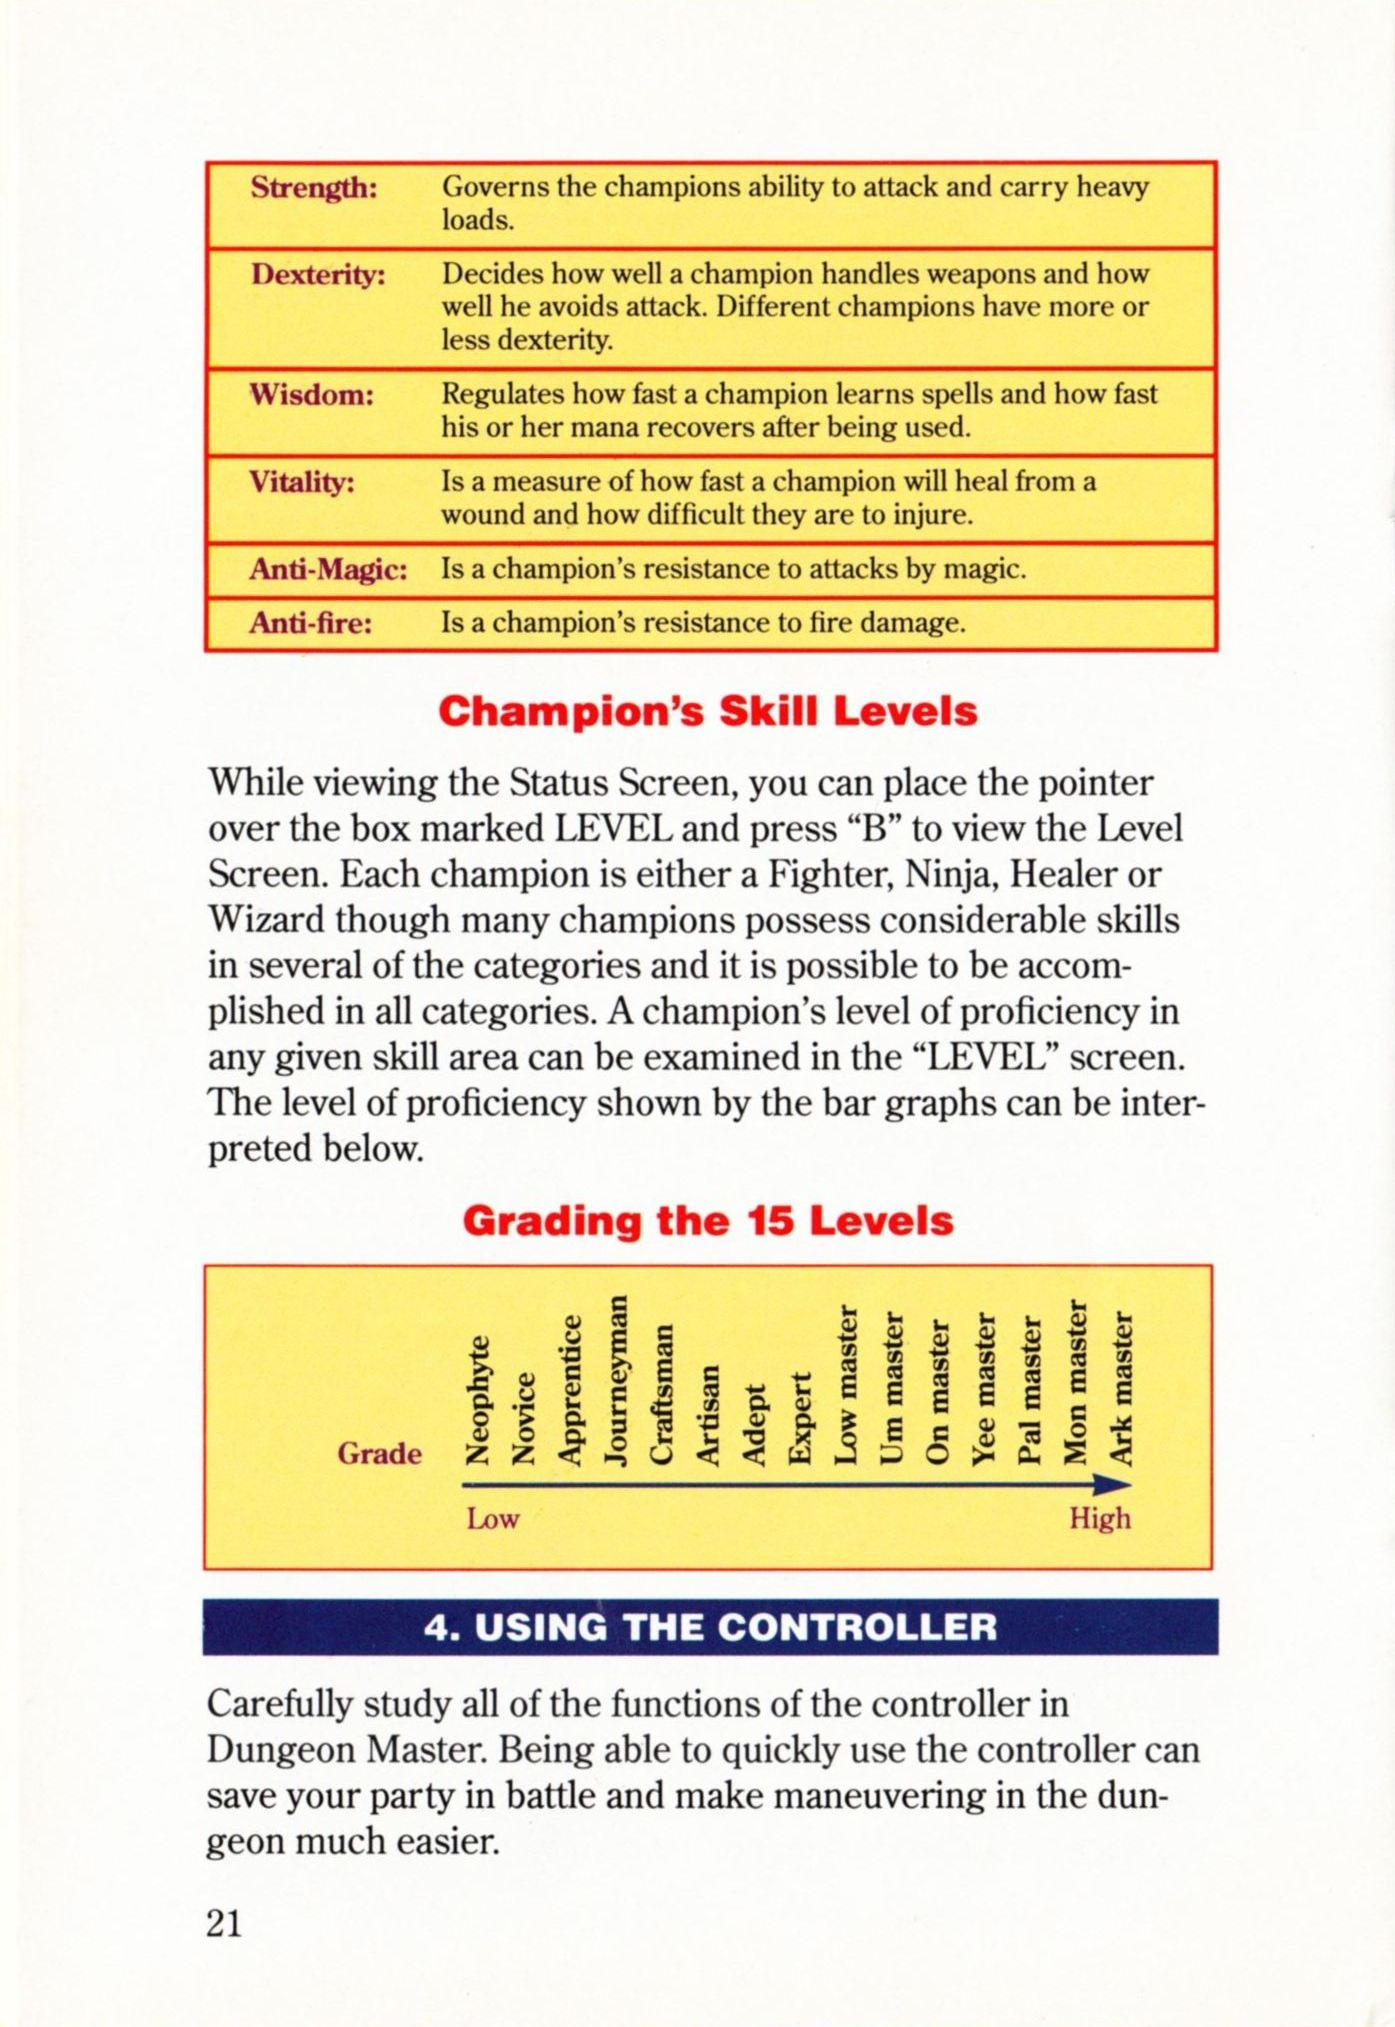 Game - Dungeon Master - US - Super NES - Manual - Page 024 - Scan